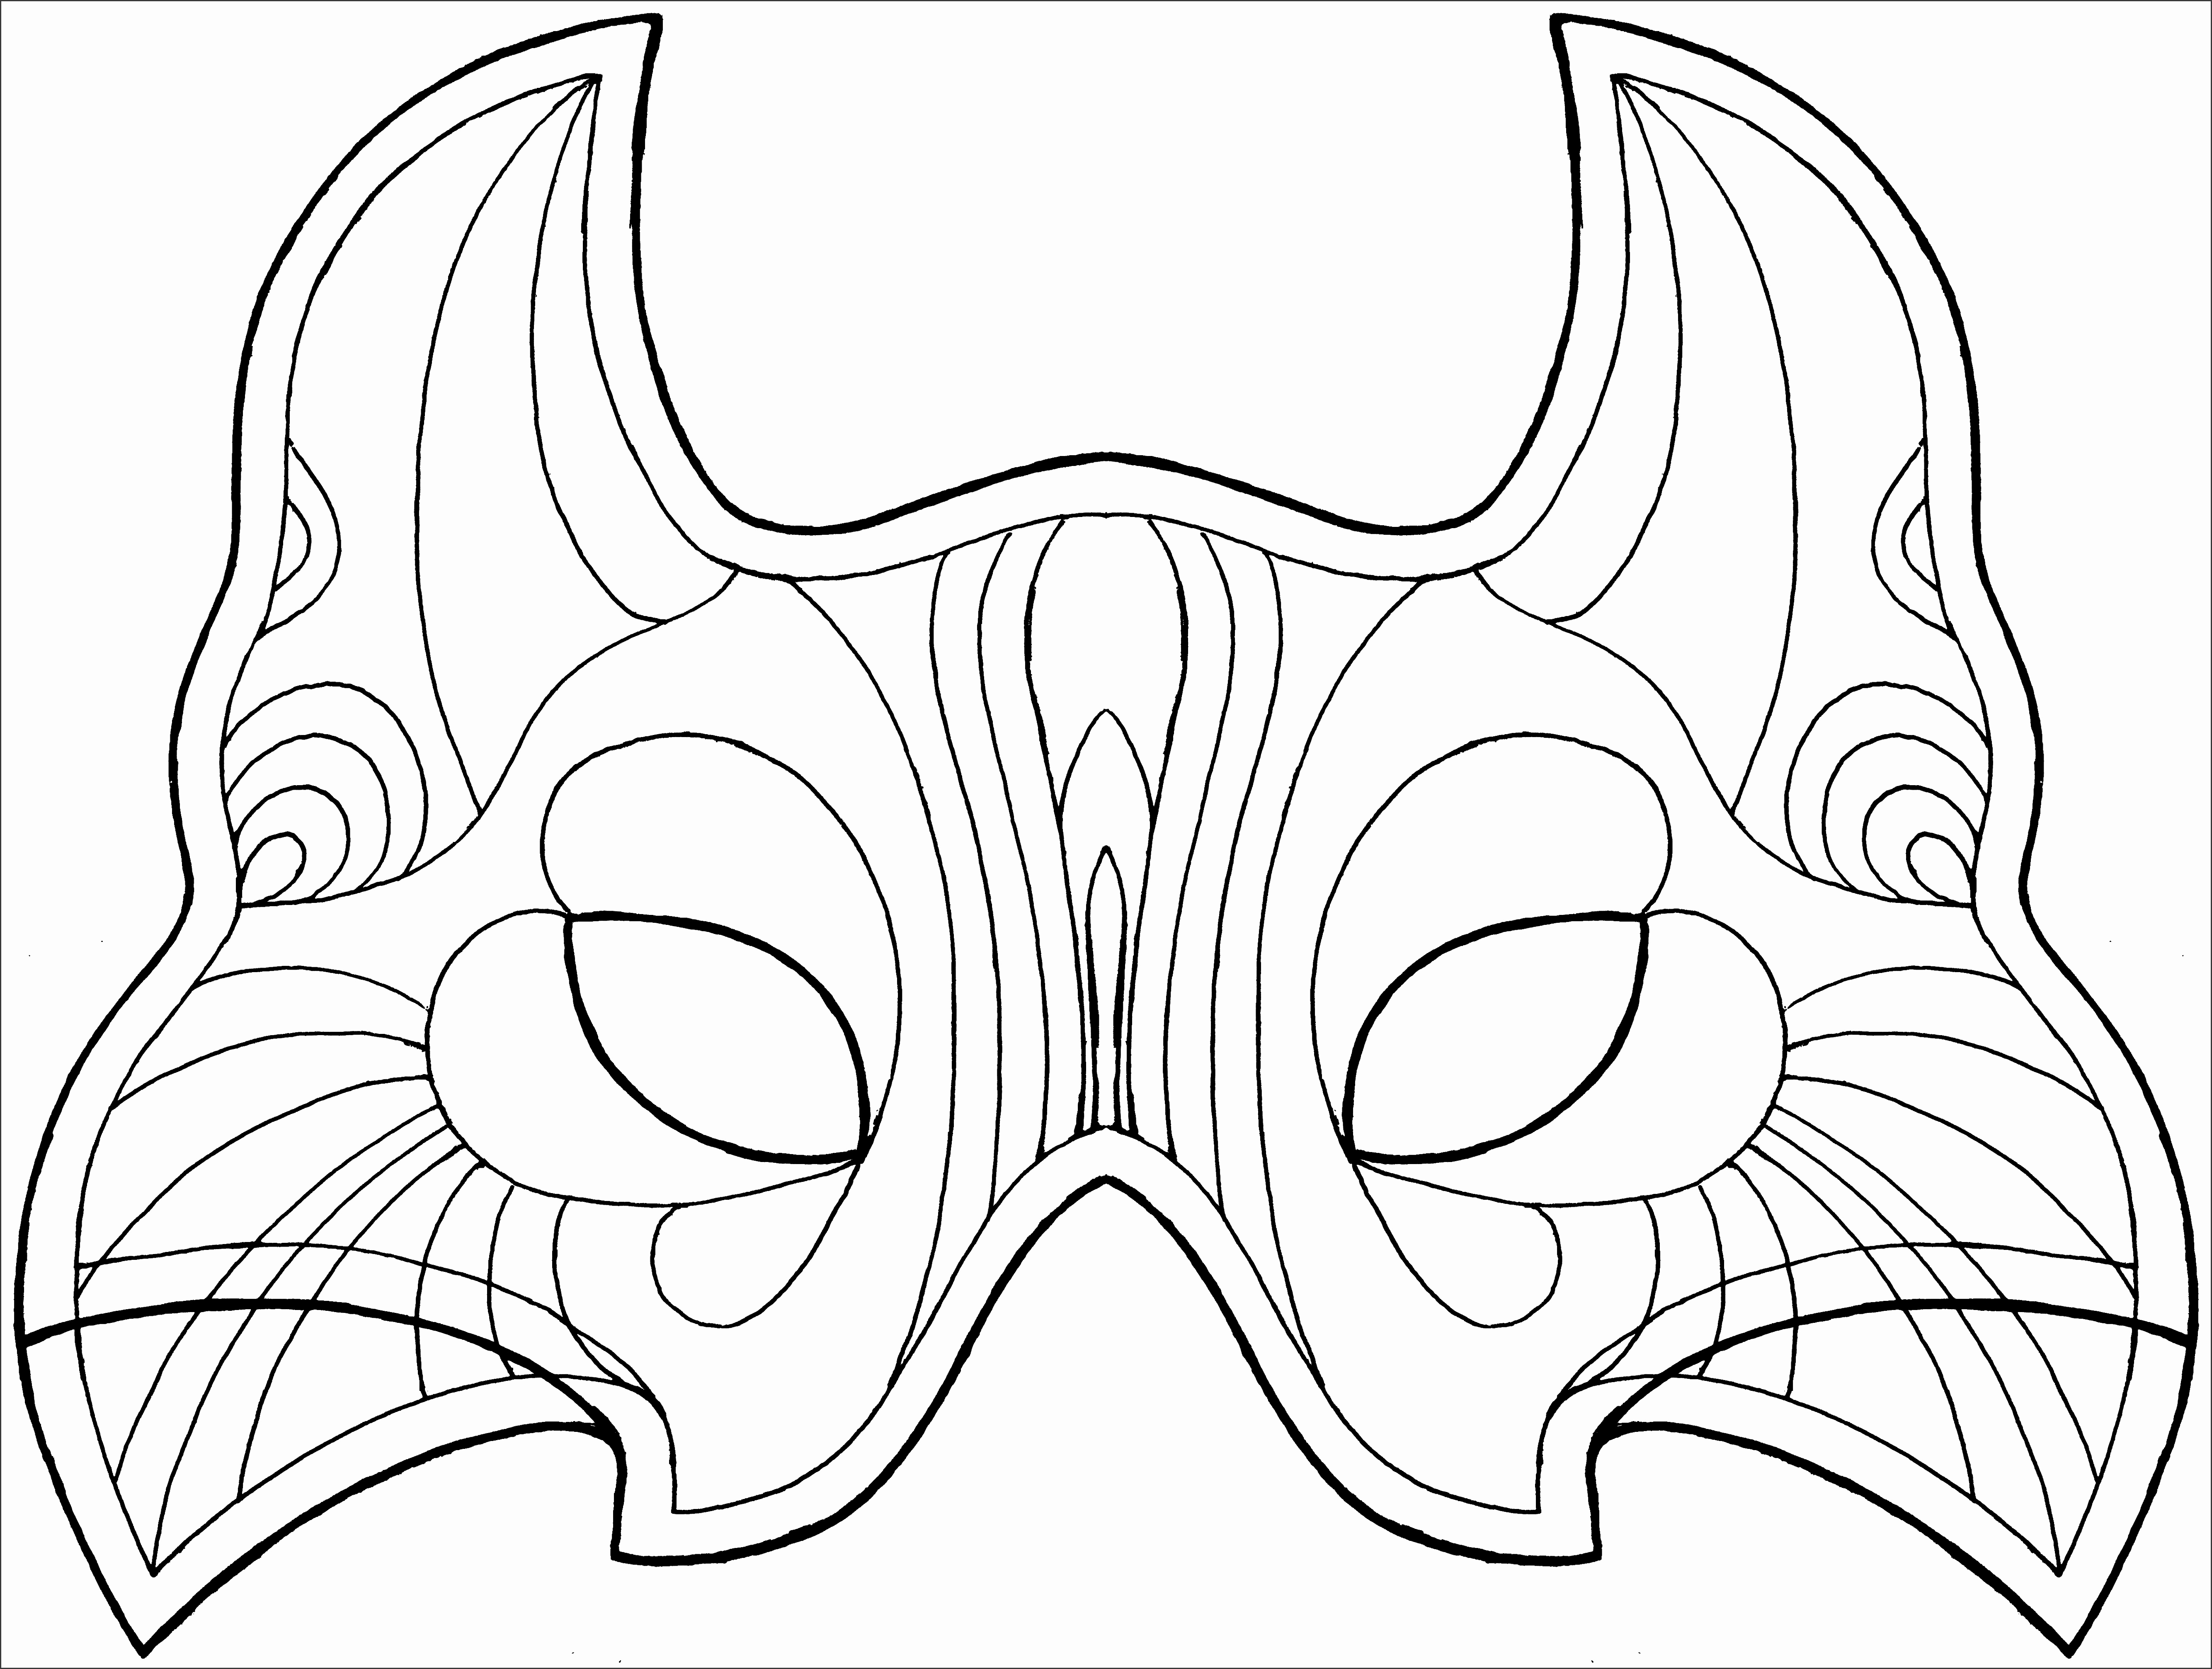 Best s Mask Patterns To Print Free Mask Templates Printable Face Mask Patterns Post